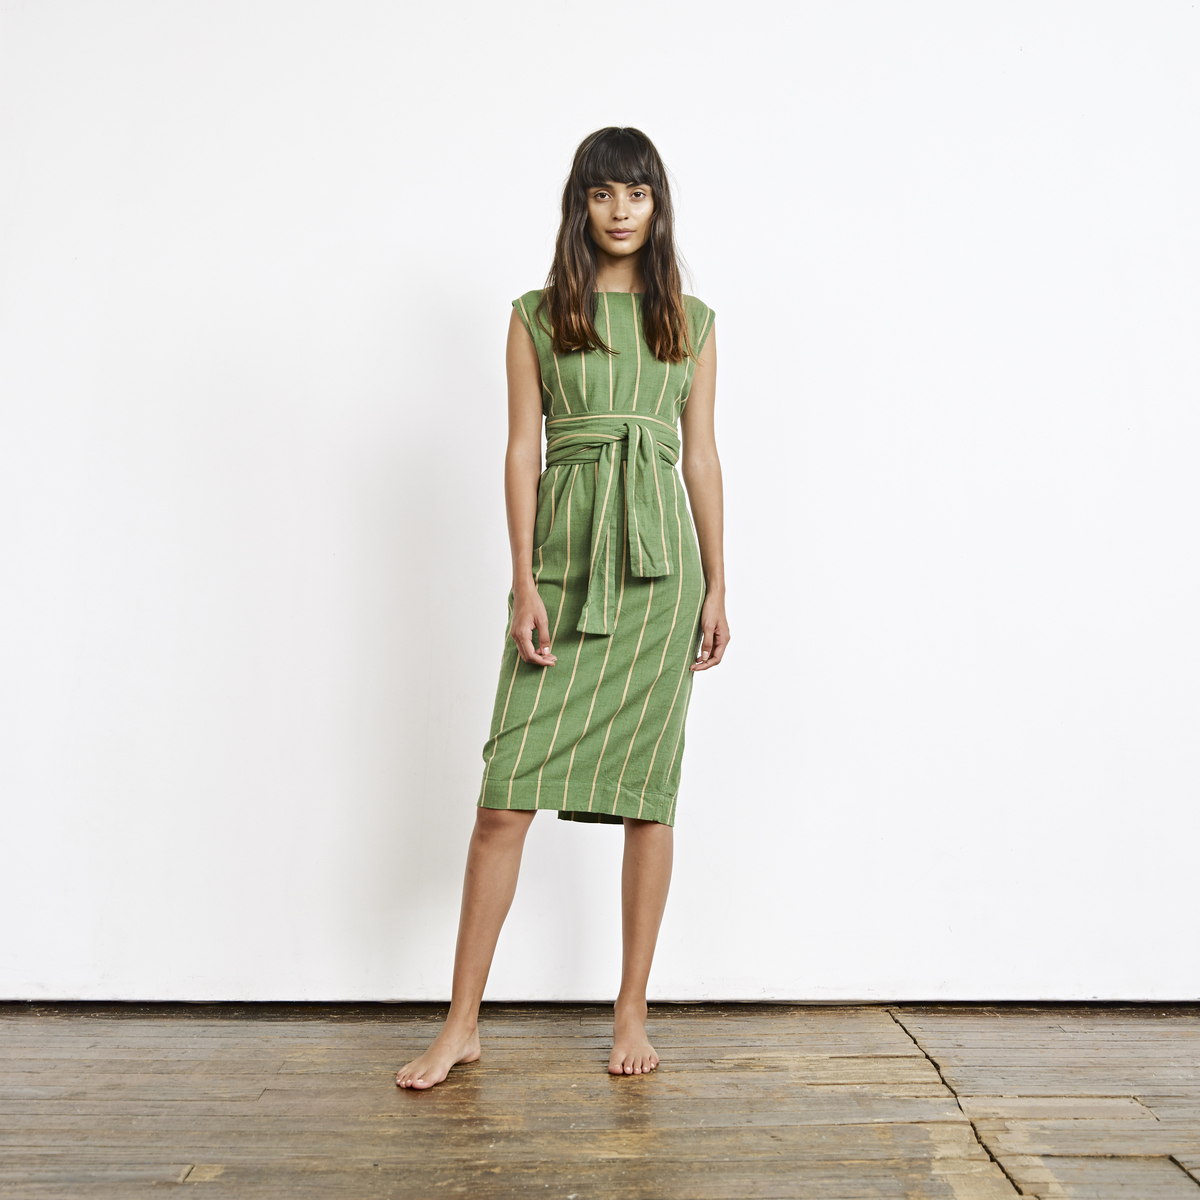 Ace & Jig Evelyn Dress - Another gem from Ace & Jig, in a lovely shade of succulent.